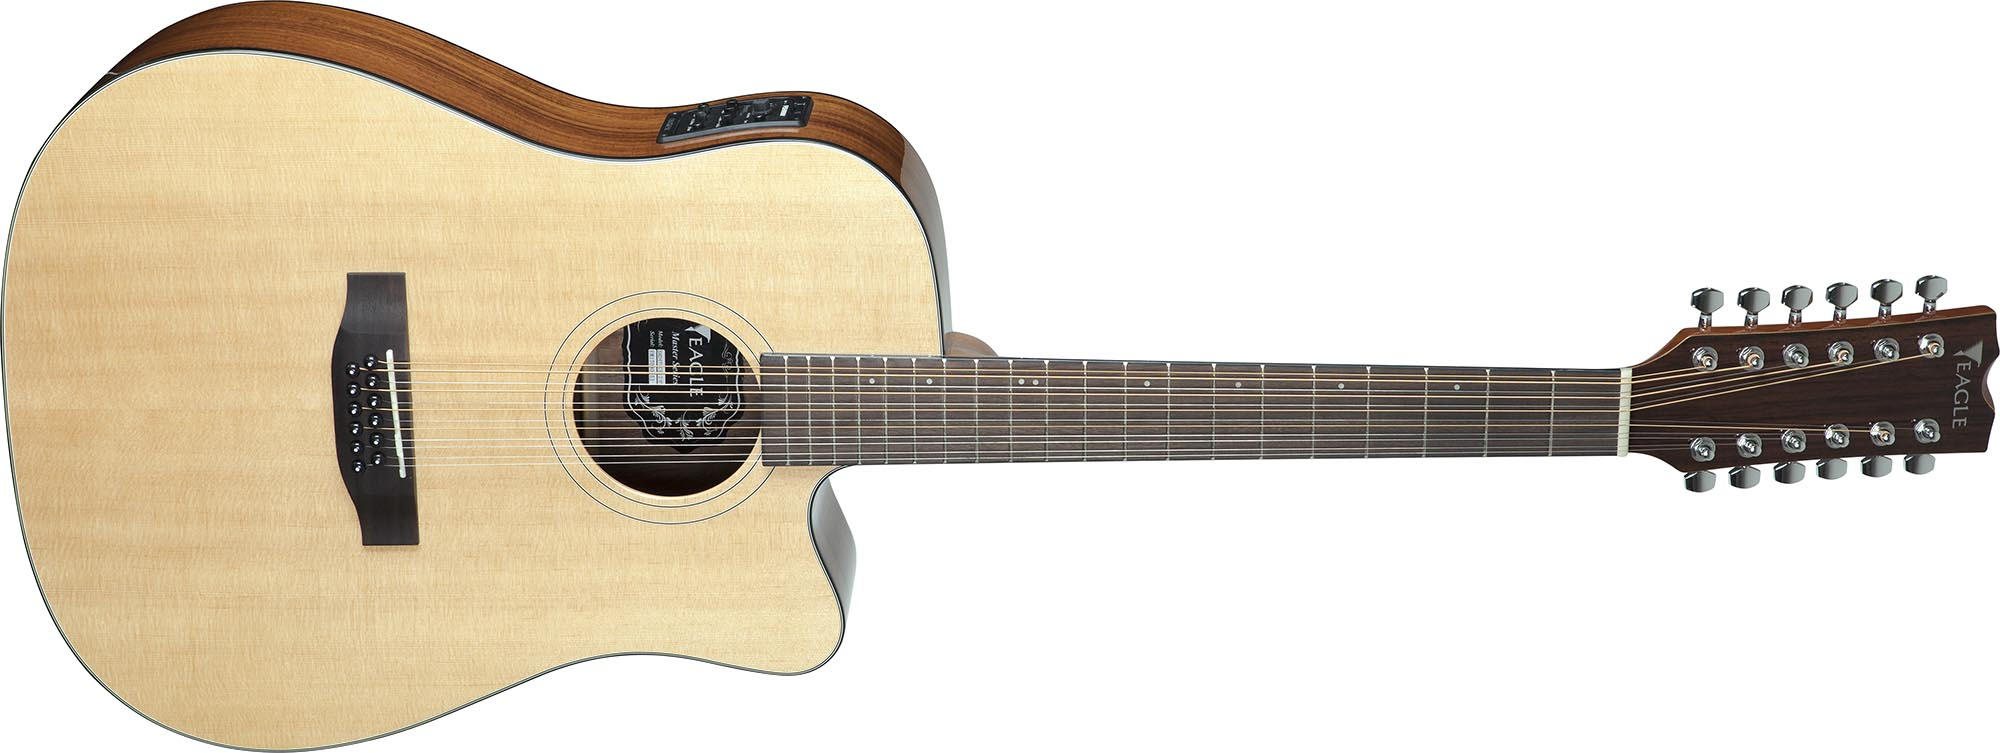 emd470ce12 violao folk dreadnought tampo solido eagle emd470ce12 nt natural visao frontal